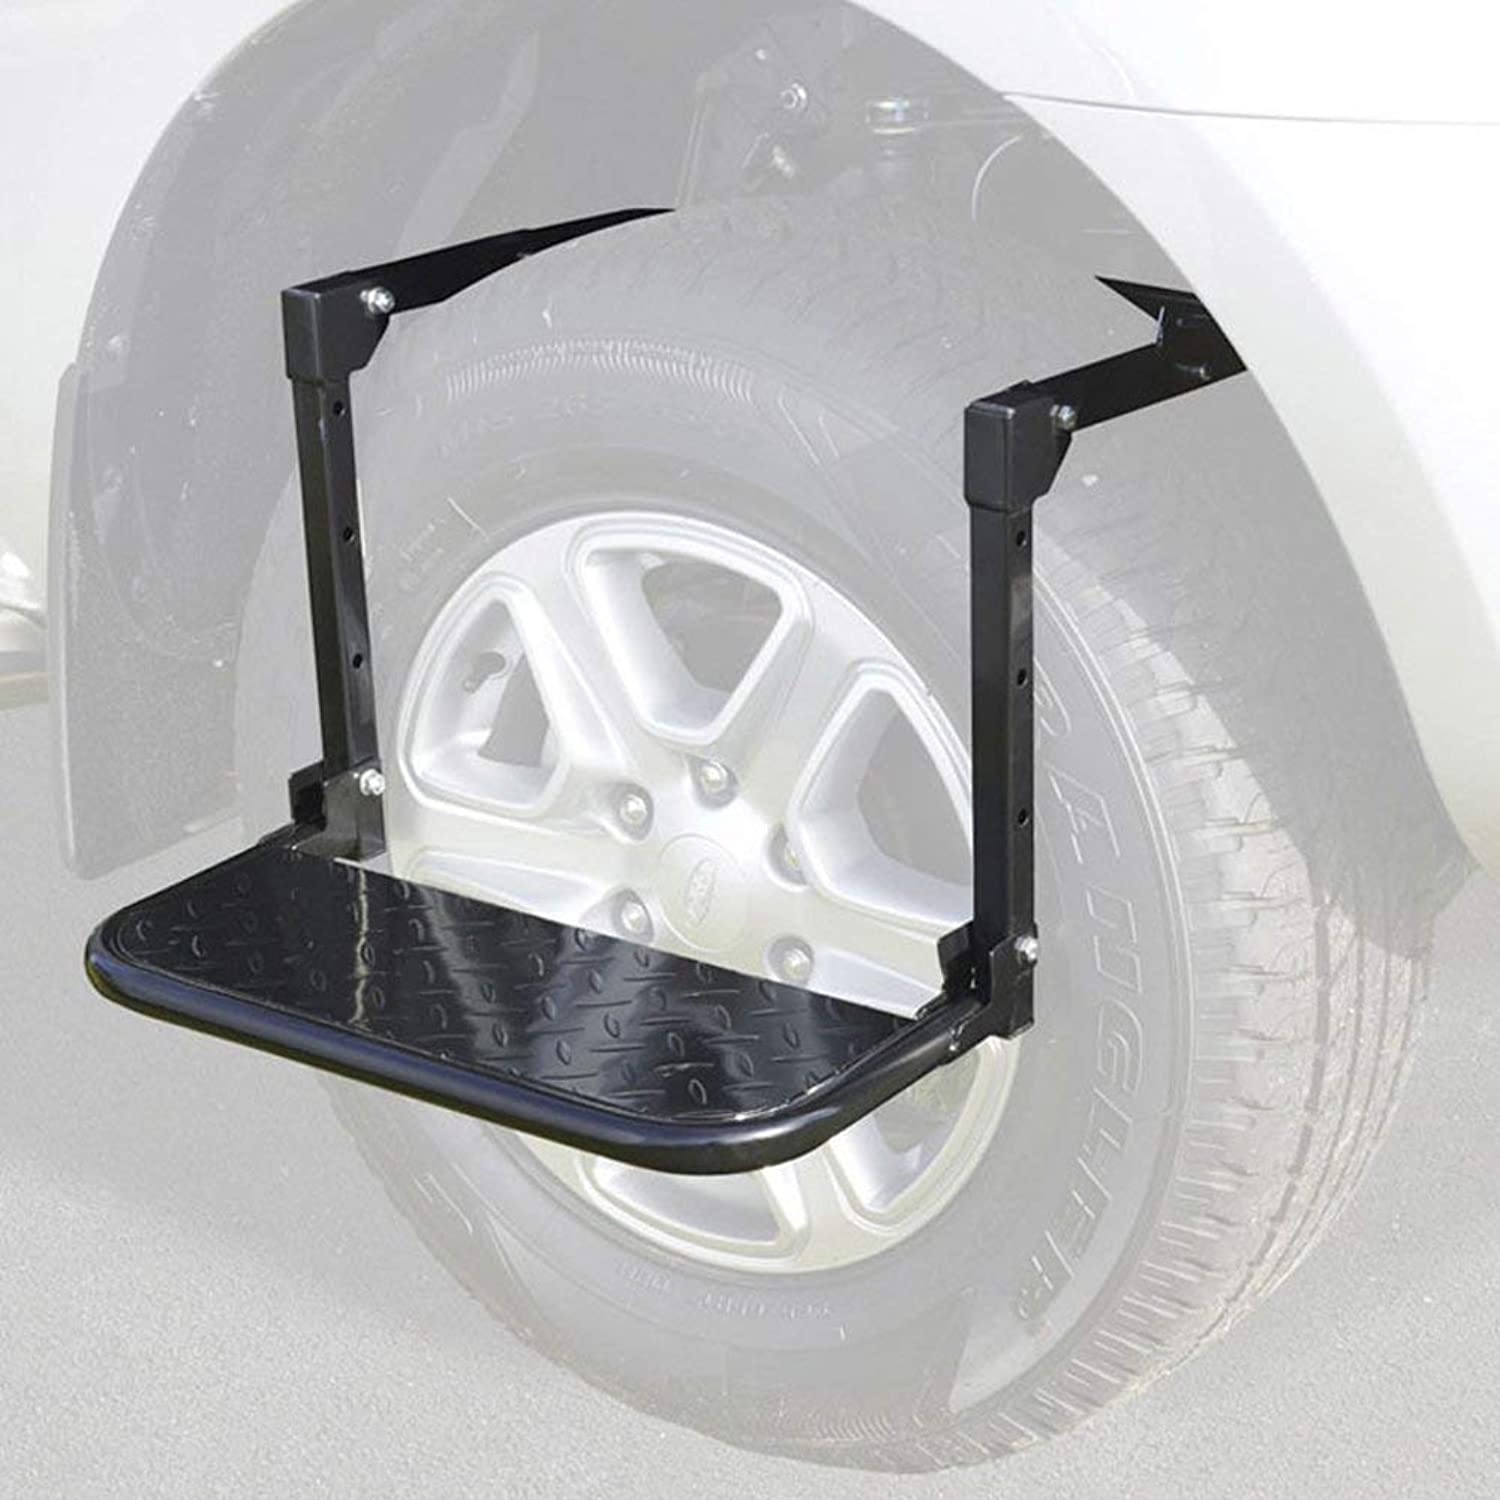 Truck SUV Tire Step Attachment,for Full Size Truck Car SUV,Heavy Duty Tire Wheel Service Step Ladder Foldable